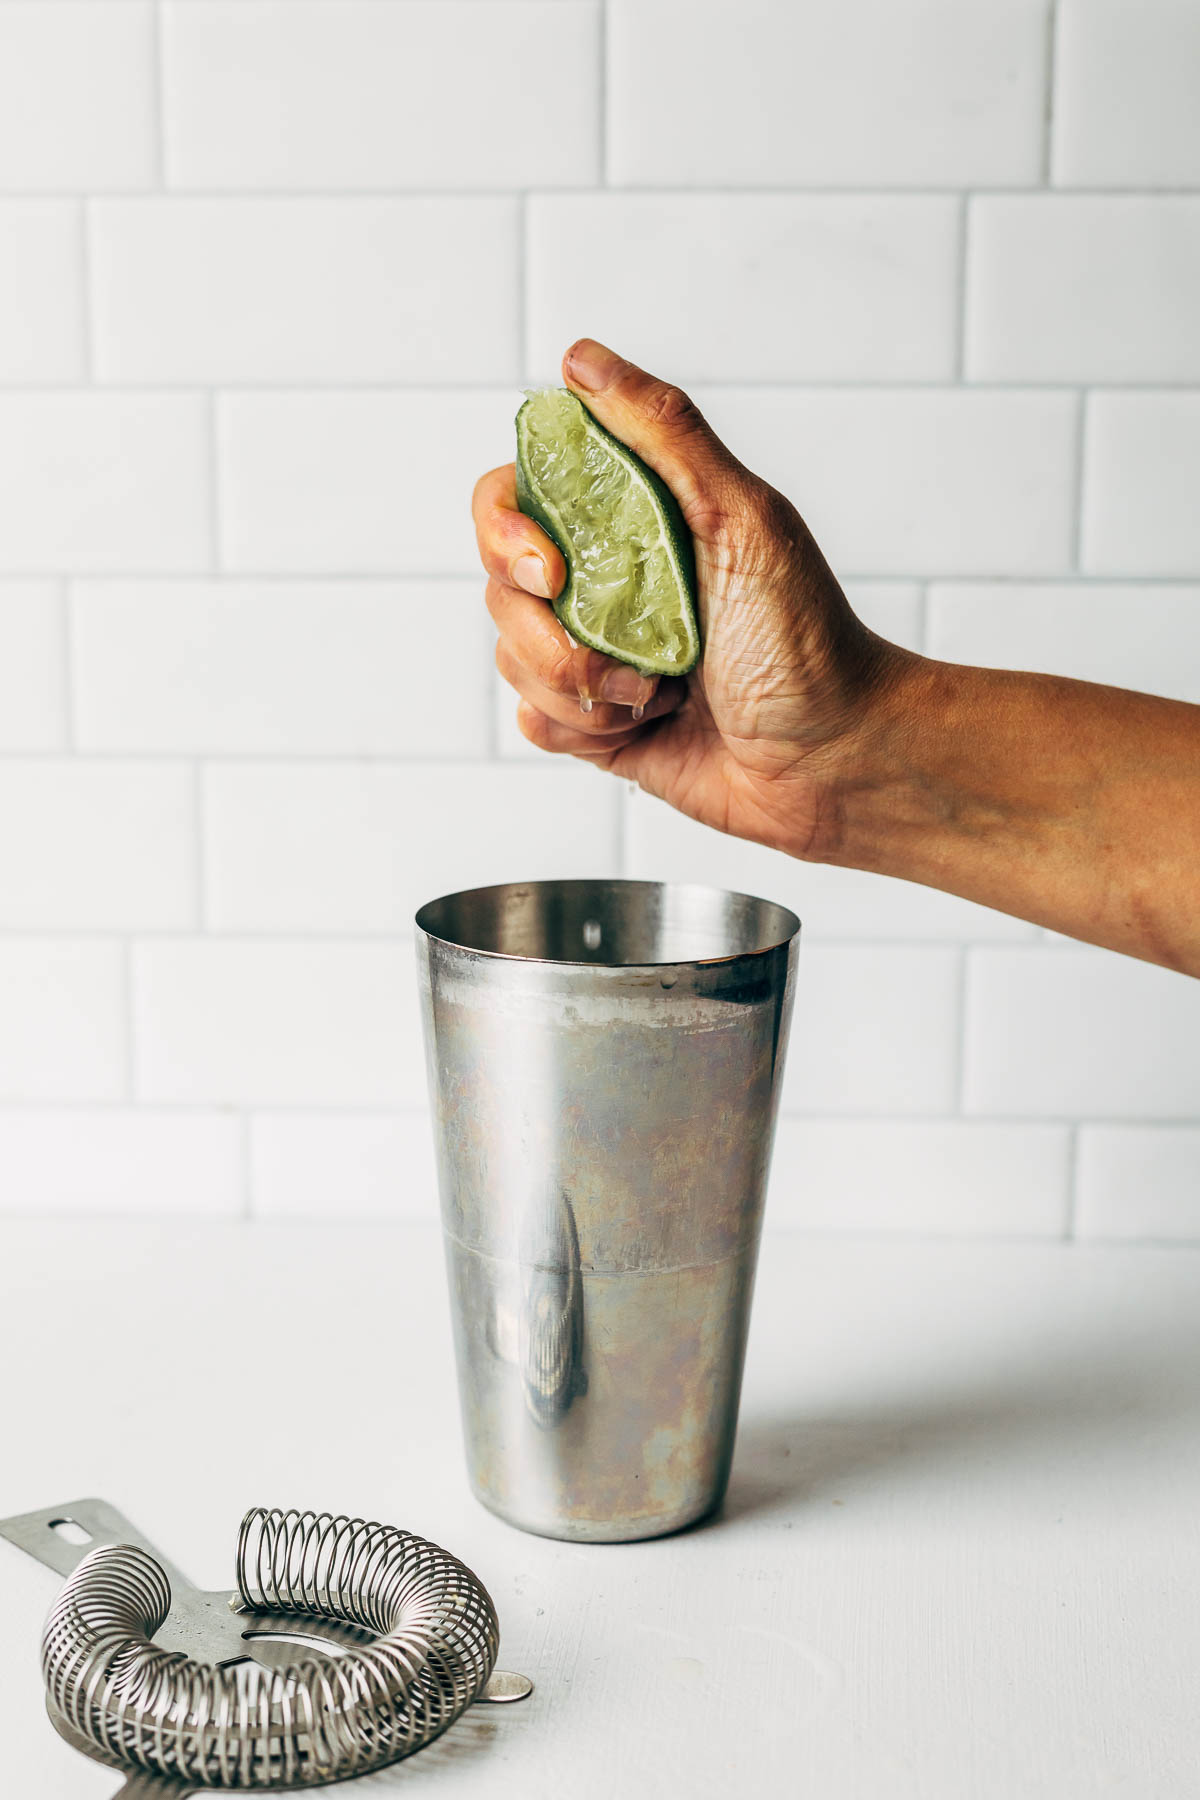 A hand squeezing half of a lime over a metal cocktail shaker.